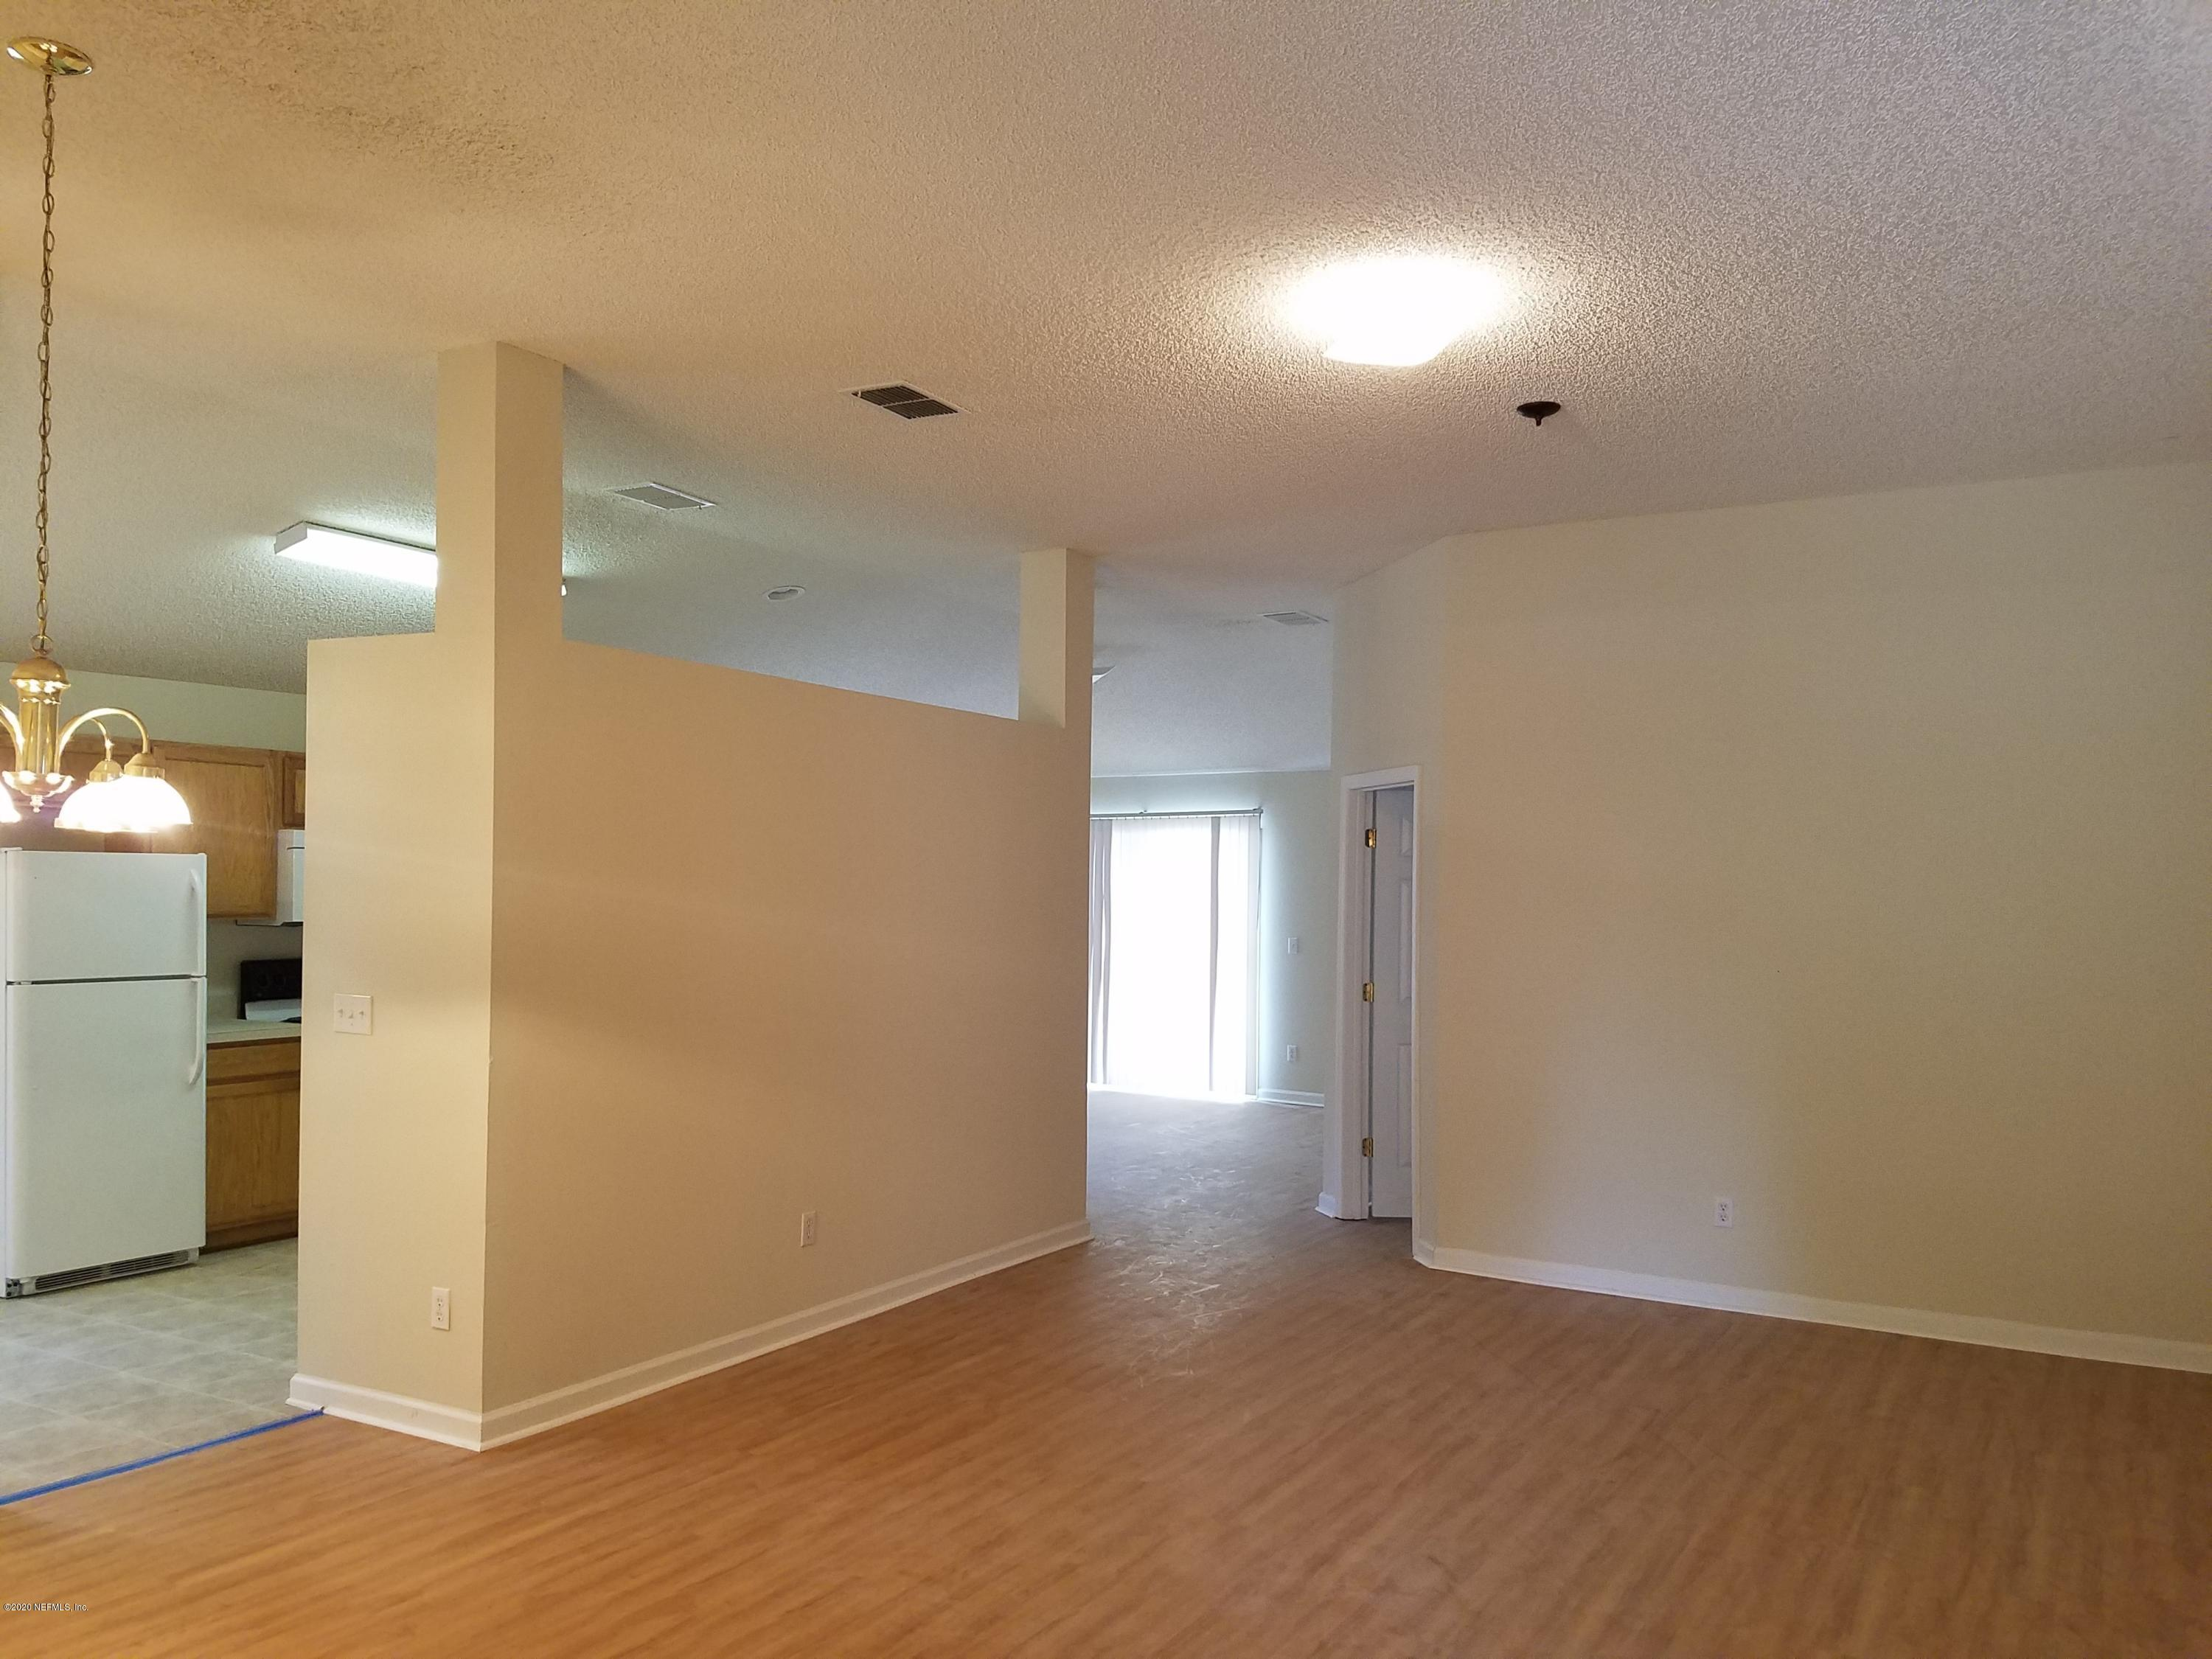 31 RANSHIRE, PALM COAST, FLORIDA 32164, 4 Bedrooms Bedrooms, ,2 BathroomsBathrooms,Residential,For sale,RANSHIRE,1080492